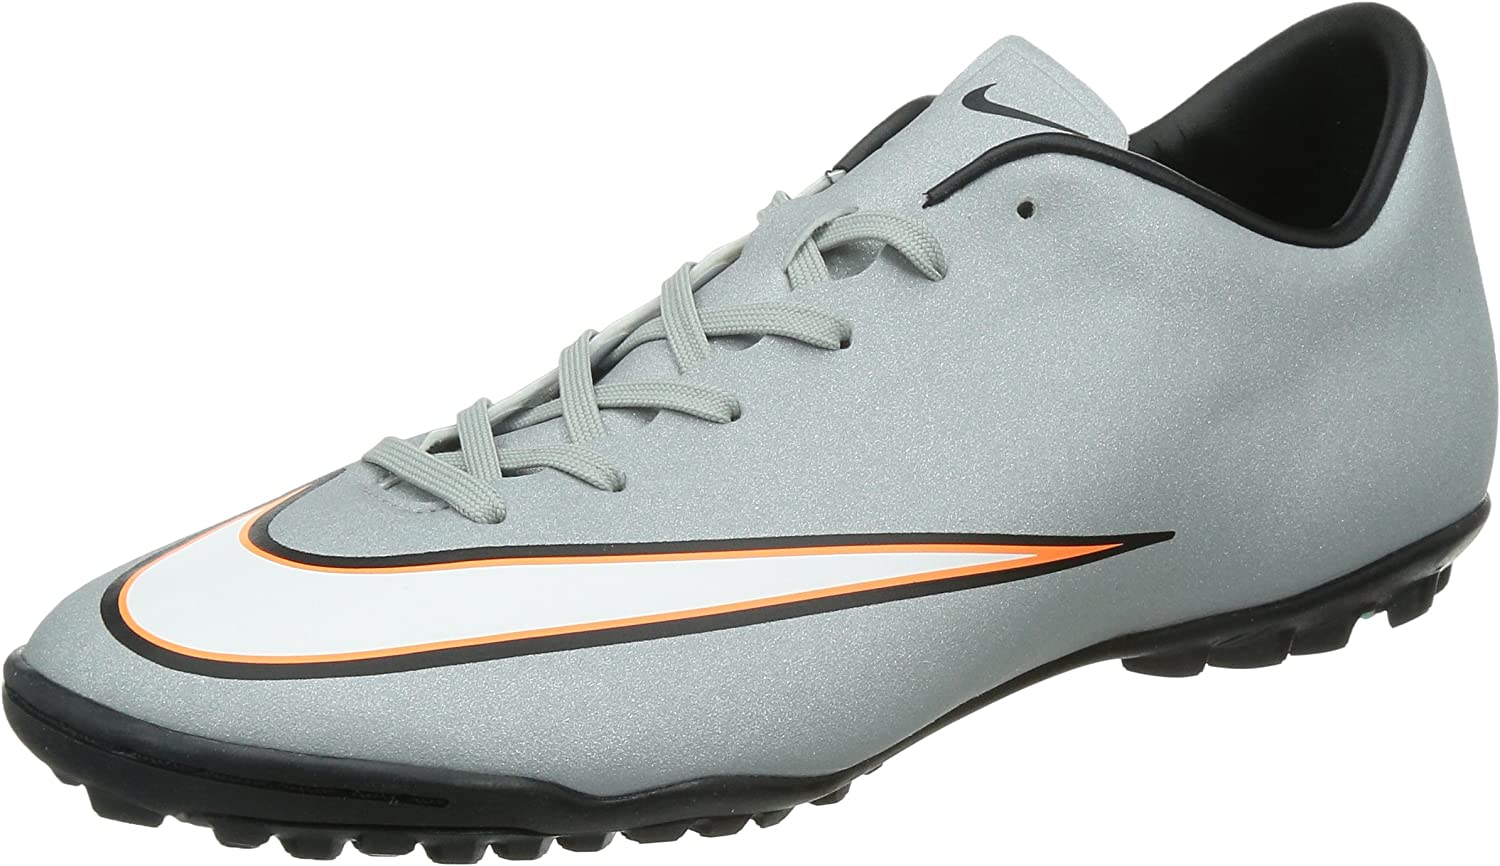 Nike Mercurial Victory V CR TF Turf Soccer Cleats Silver